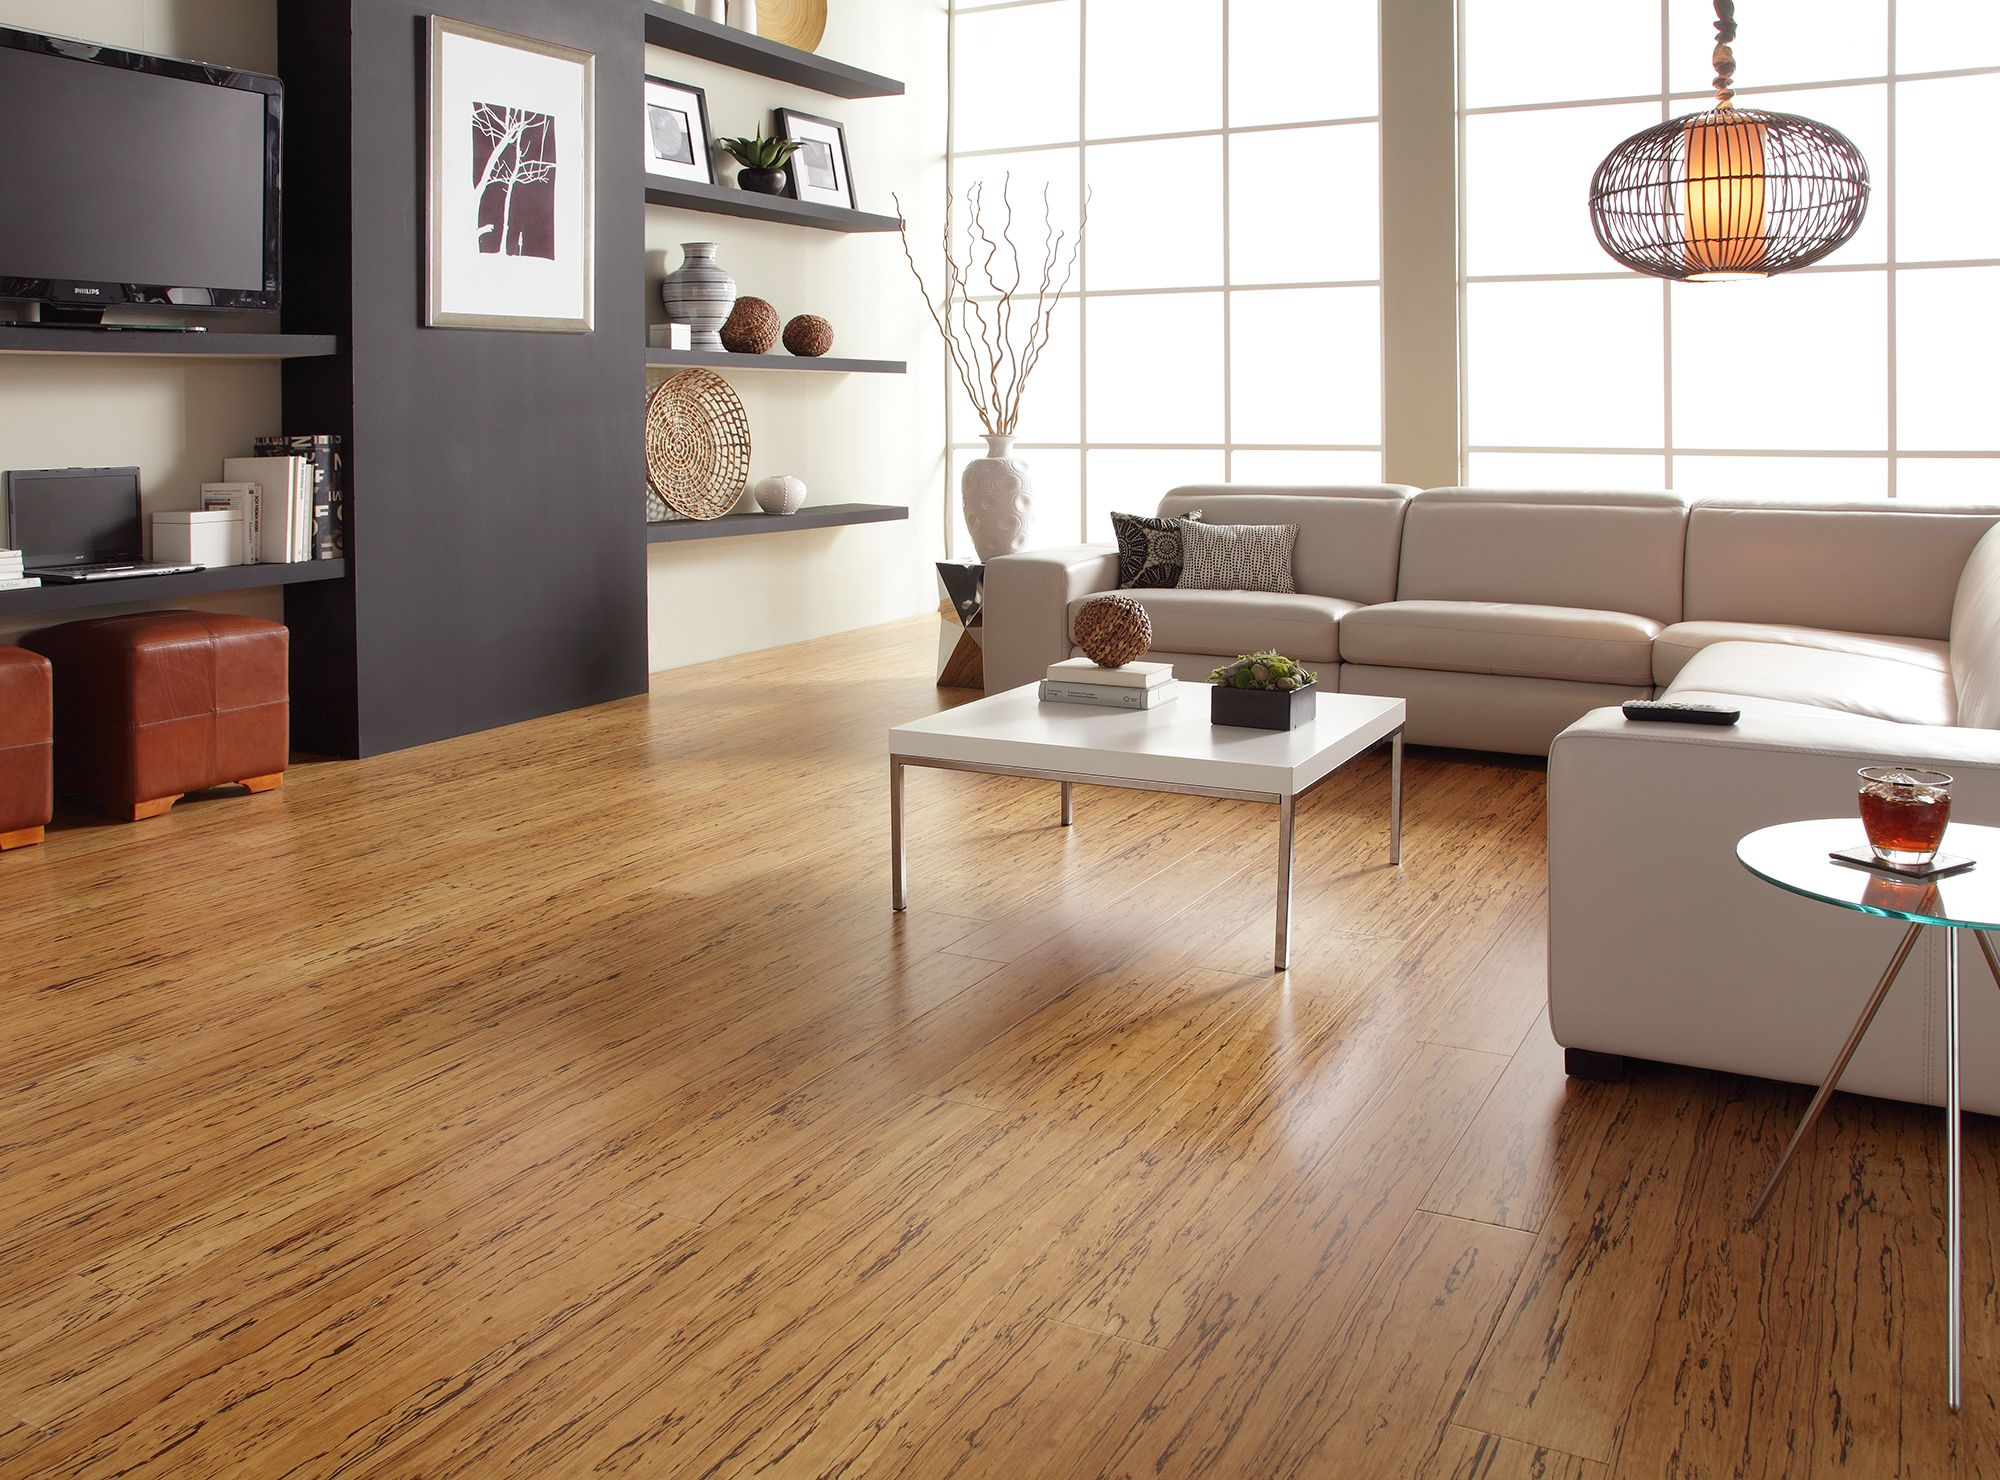 USFloors' Corboo Natural available at Interiors and